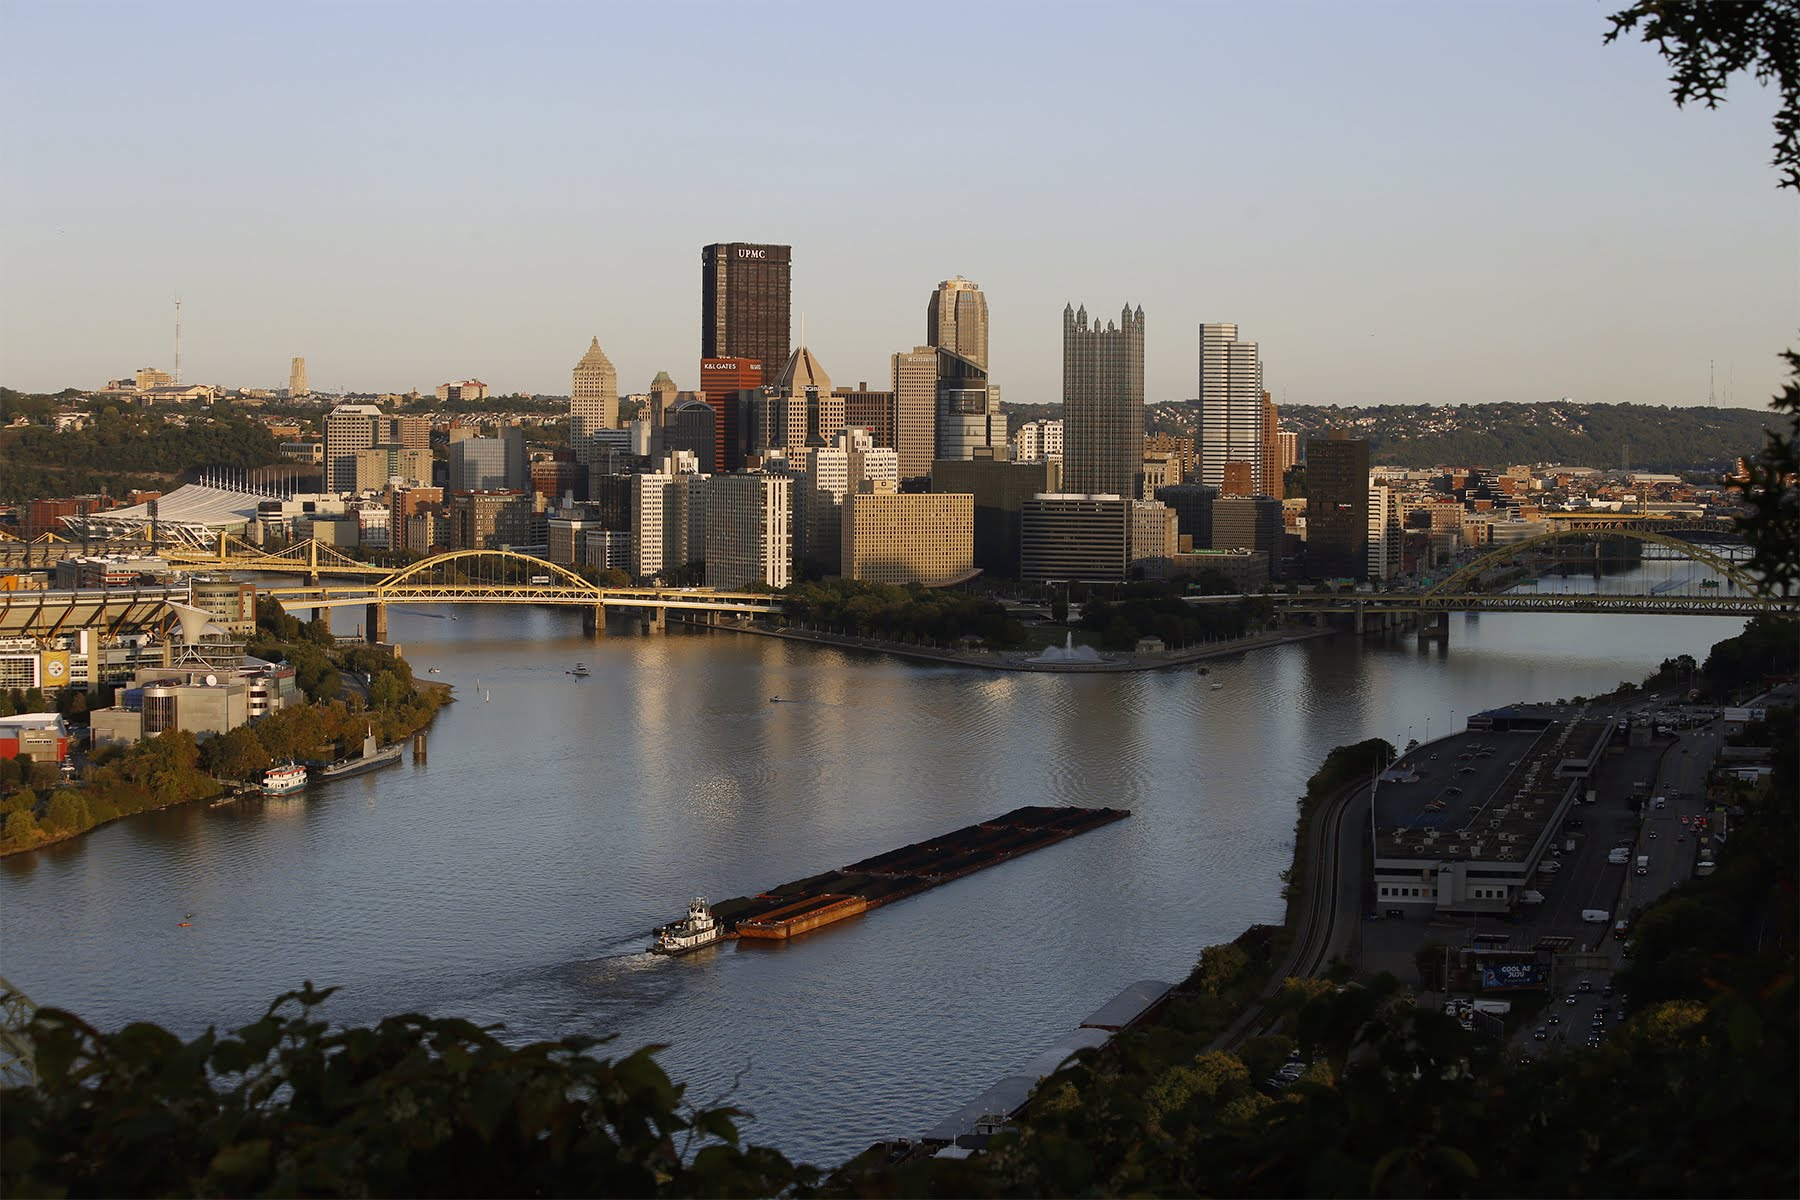 Could the Ohio River Have Rights?